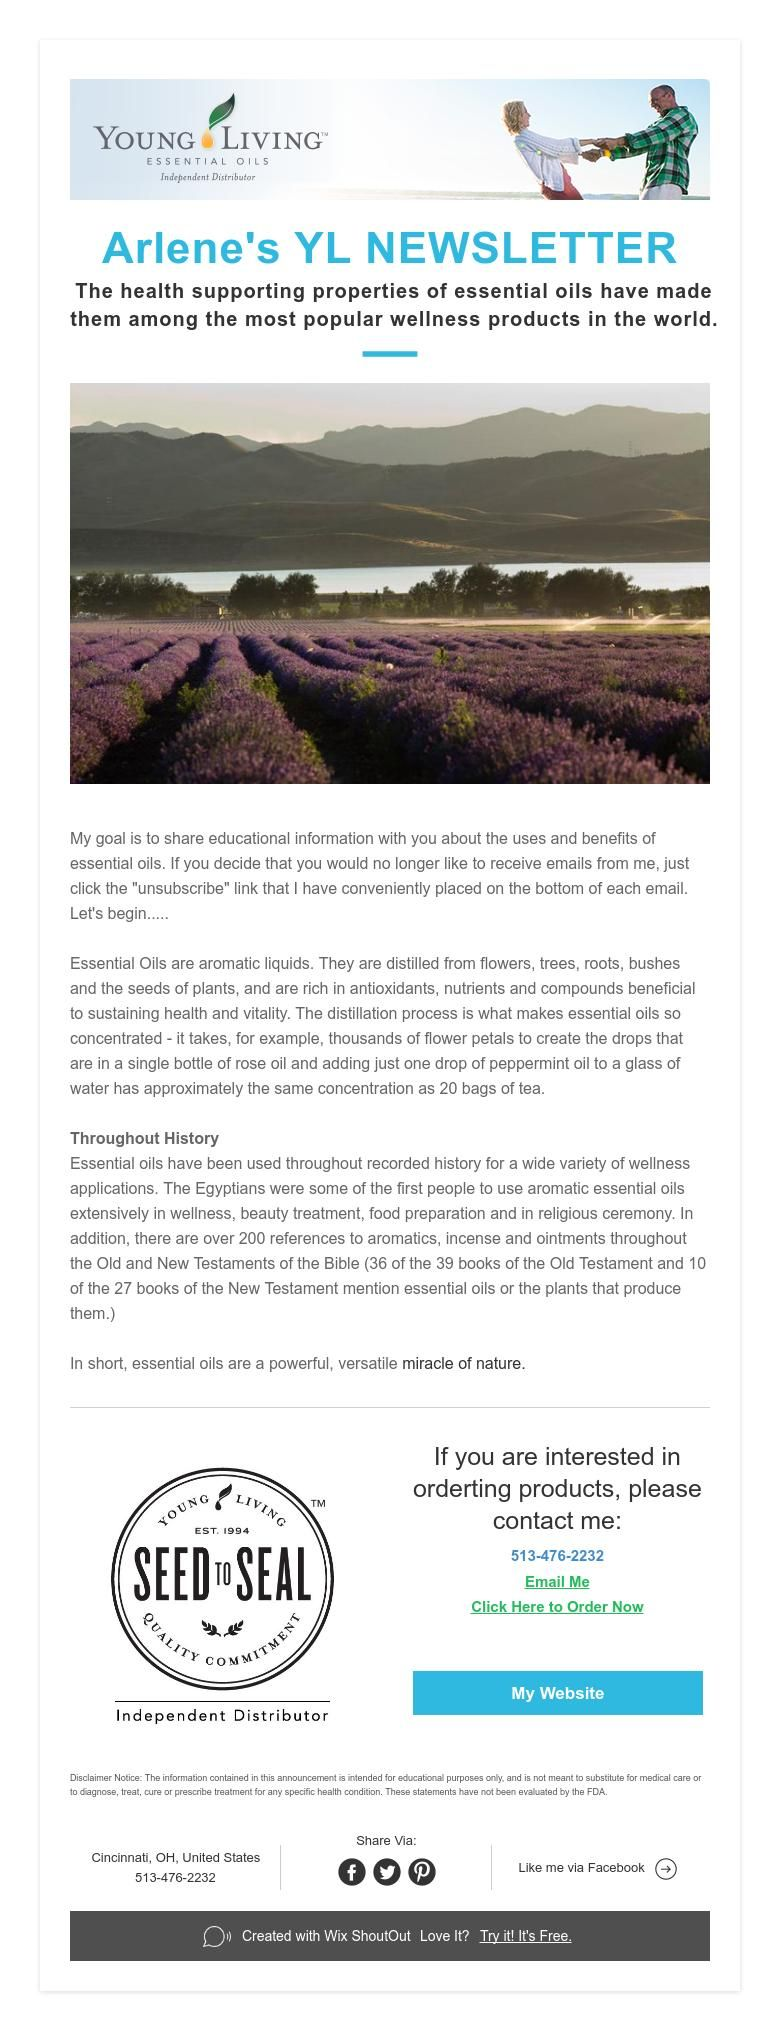 Arlene's YLNEWSLETTER  The health supporting properties of essential oils have made them among the most popular wellness products in the world.